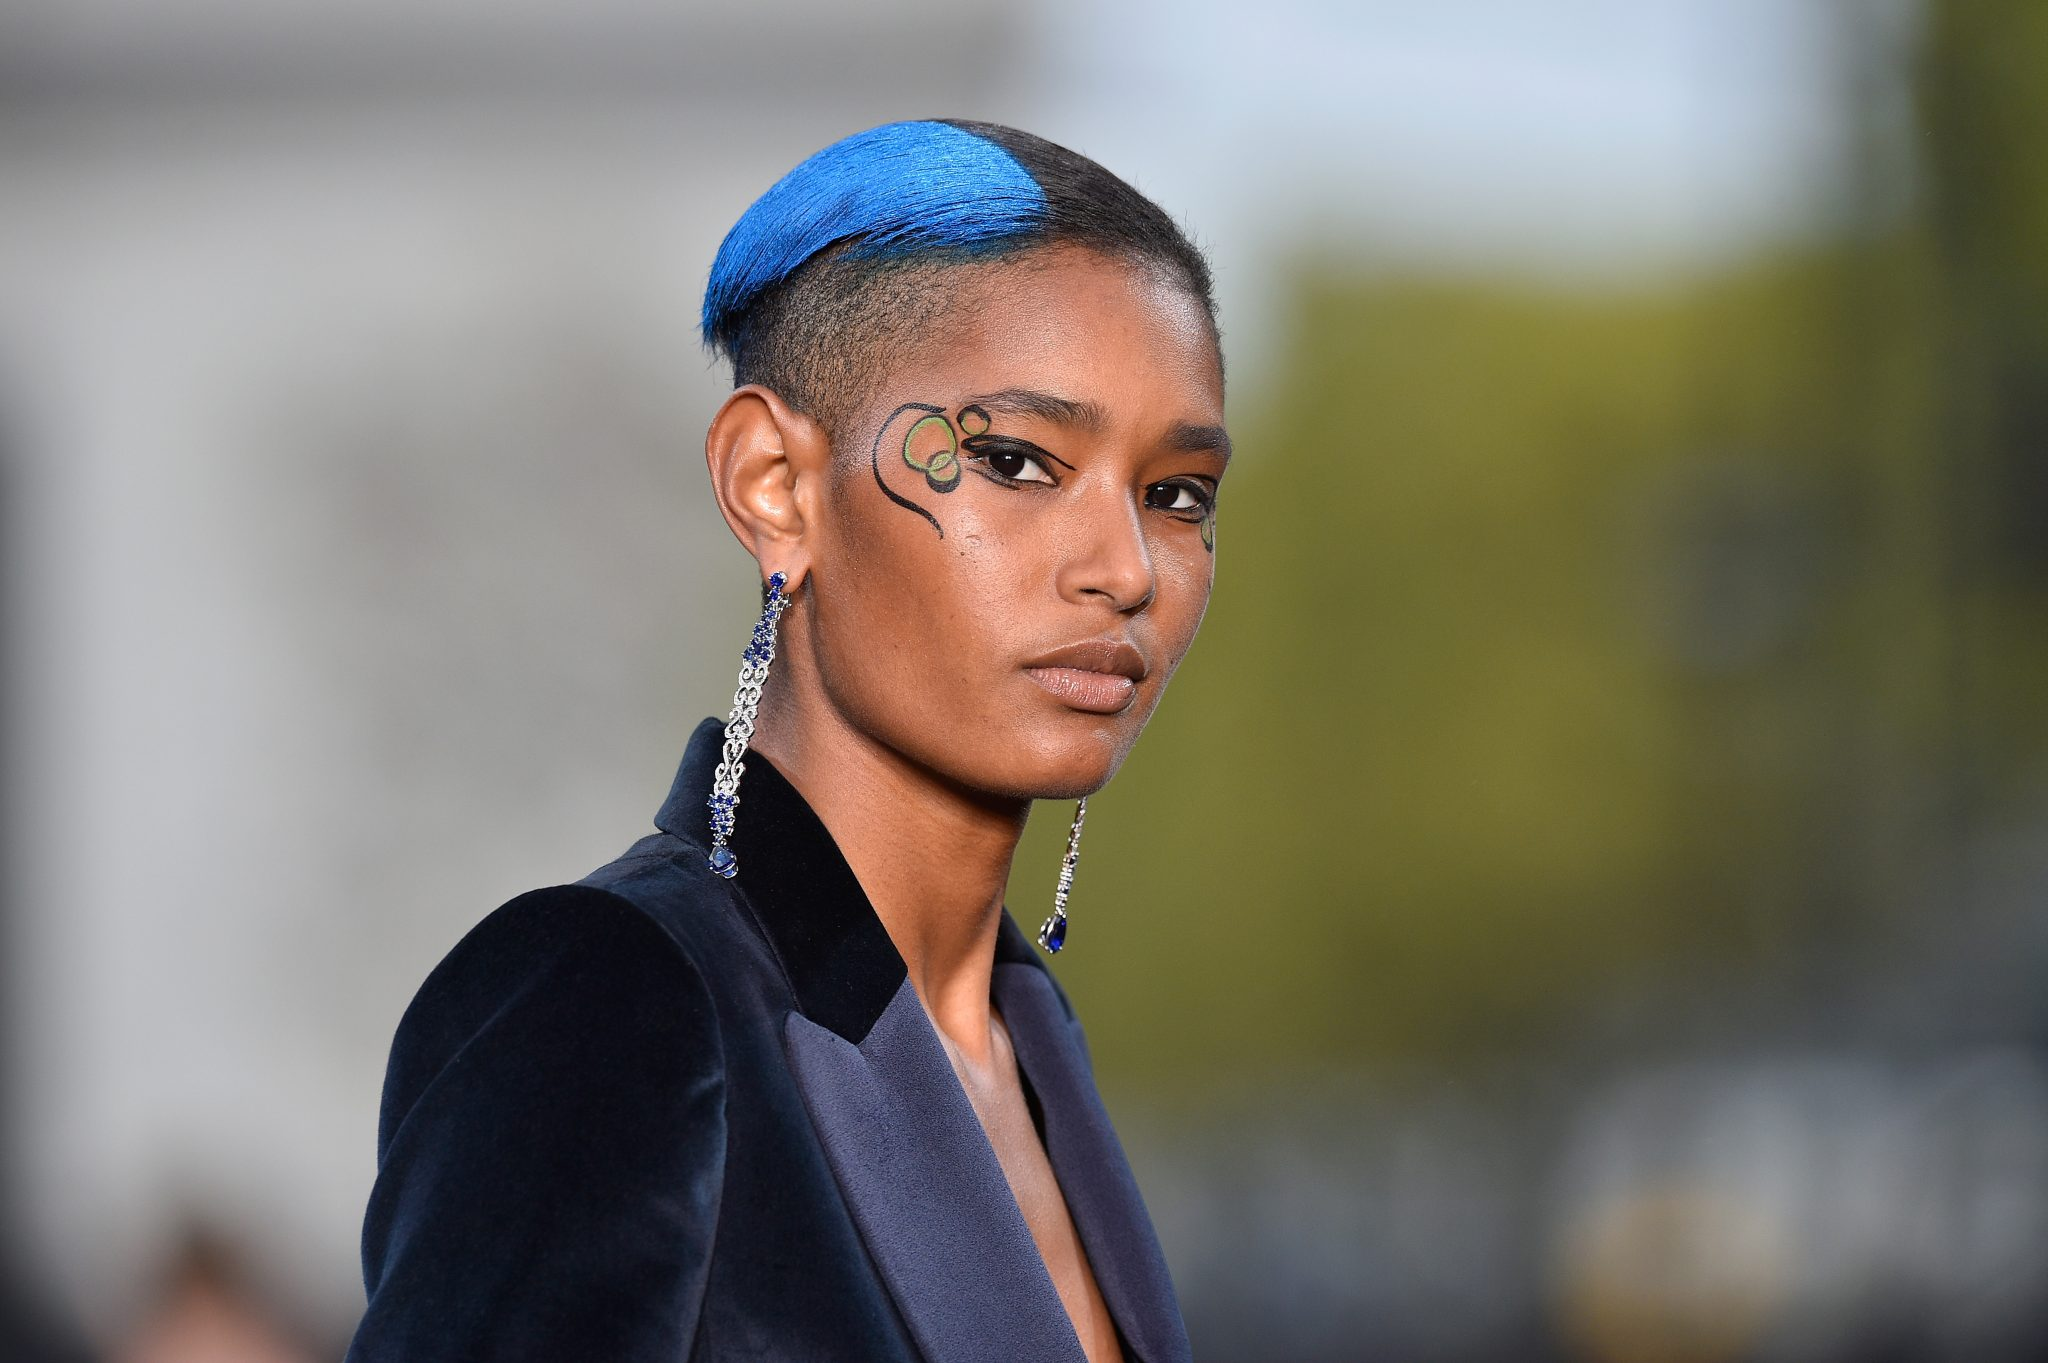 PARIS, FRANCE - OCTOBER 01: Ysaunny Brito walks the runway during Le Defile L'Oreal Paris as part of Paris Fashion Week Womenswear Spring/Summer 2018 at Avenue Des Champs Elysees on October 1, 2017 in Paris, France. (Photo by Kristy Sparow/Getty Images for L'Oreal)